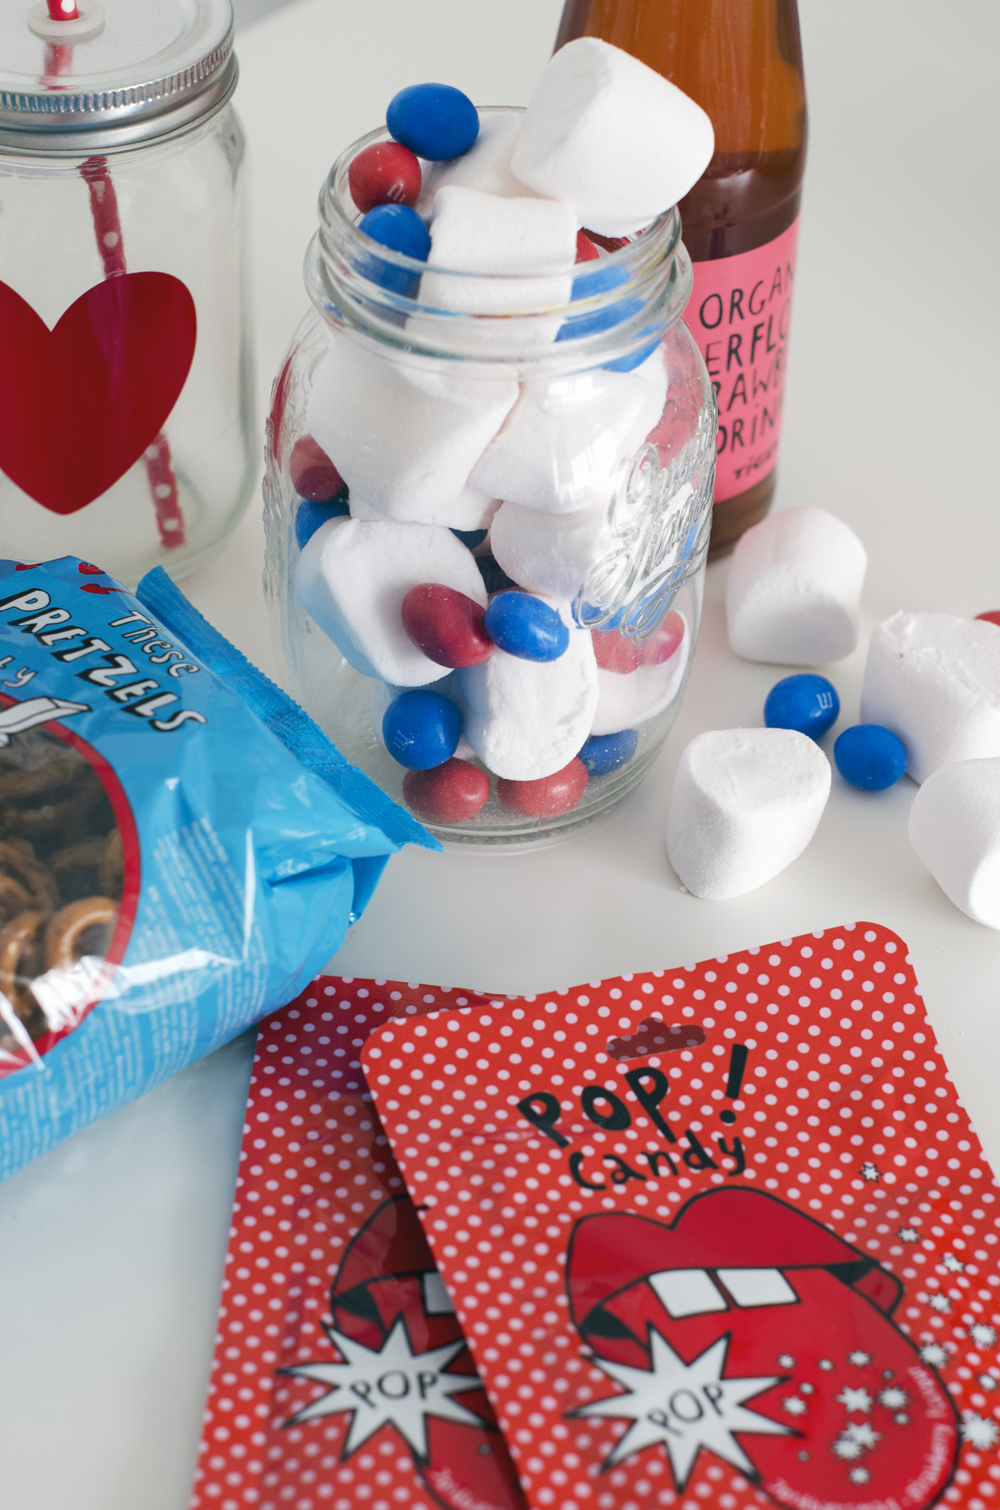 San valentino fai da te film romantici e pop corn con il movie basket - Bricolage fai da te idee ...